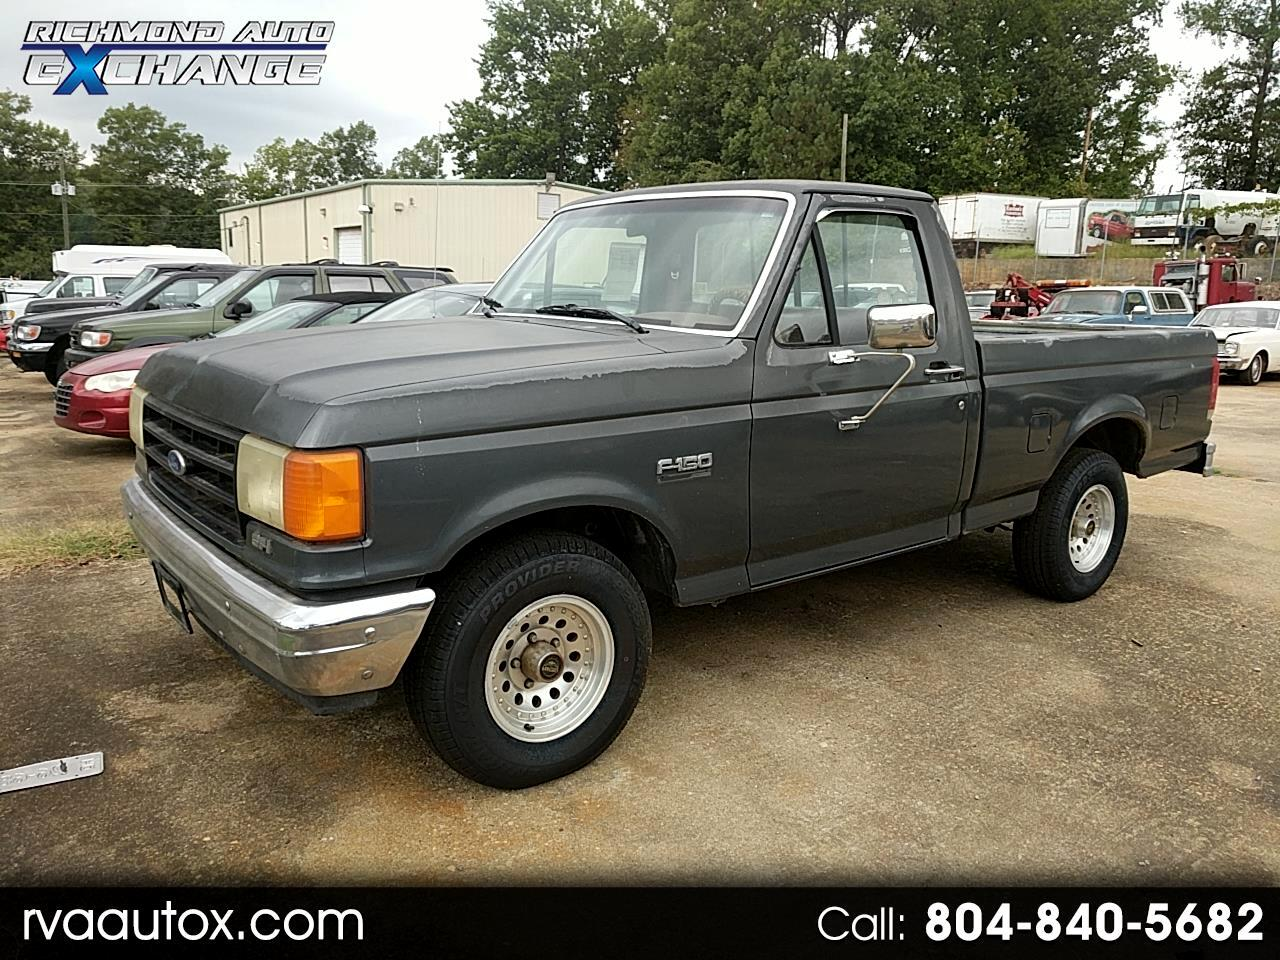 1987 Ford F-150 Regular Cab 2WD